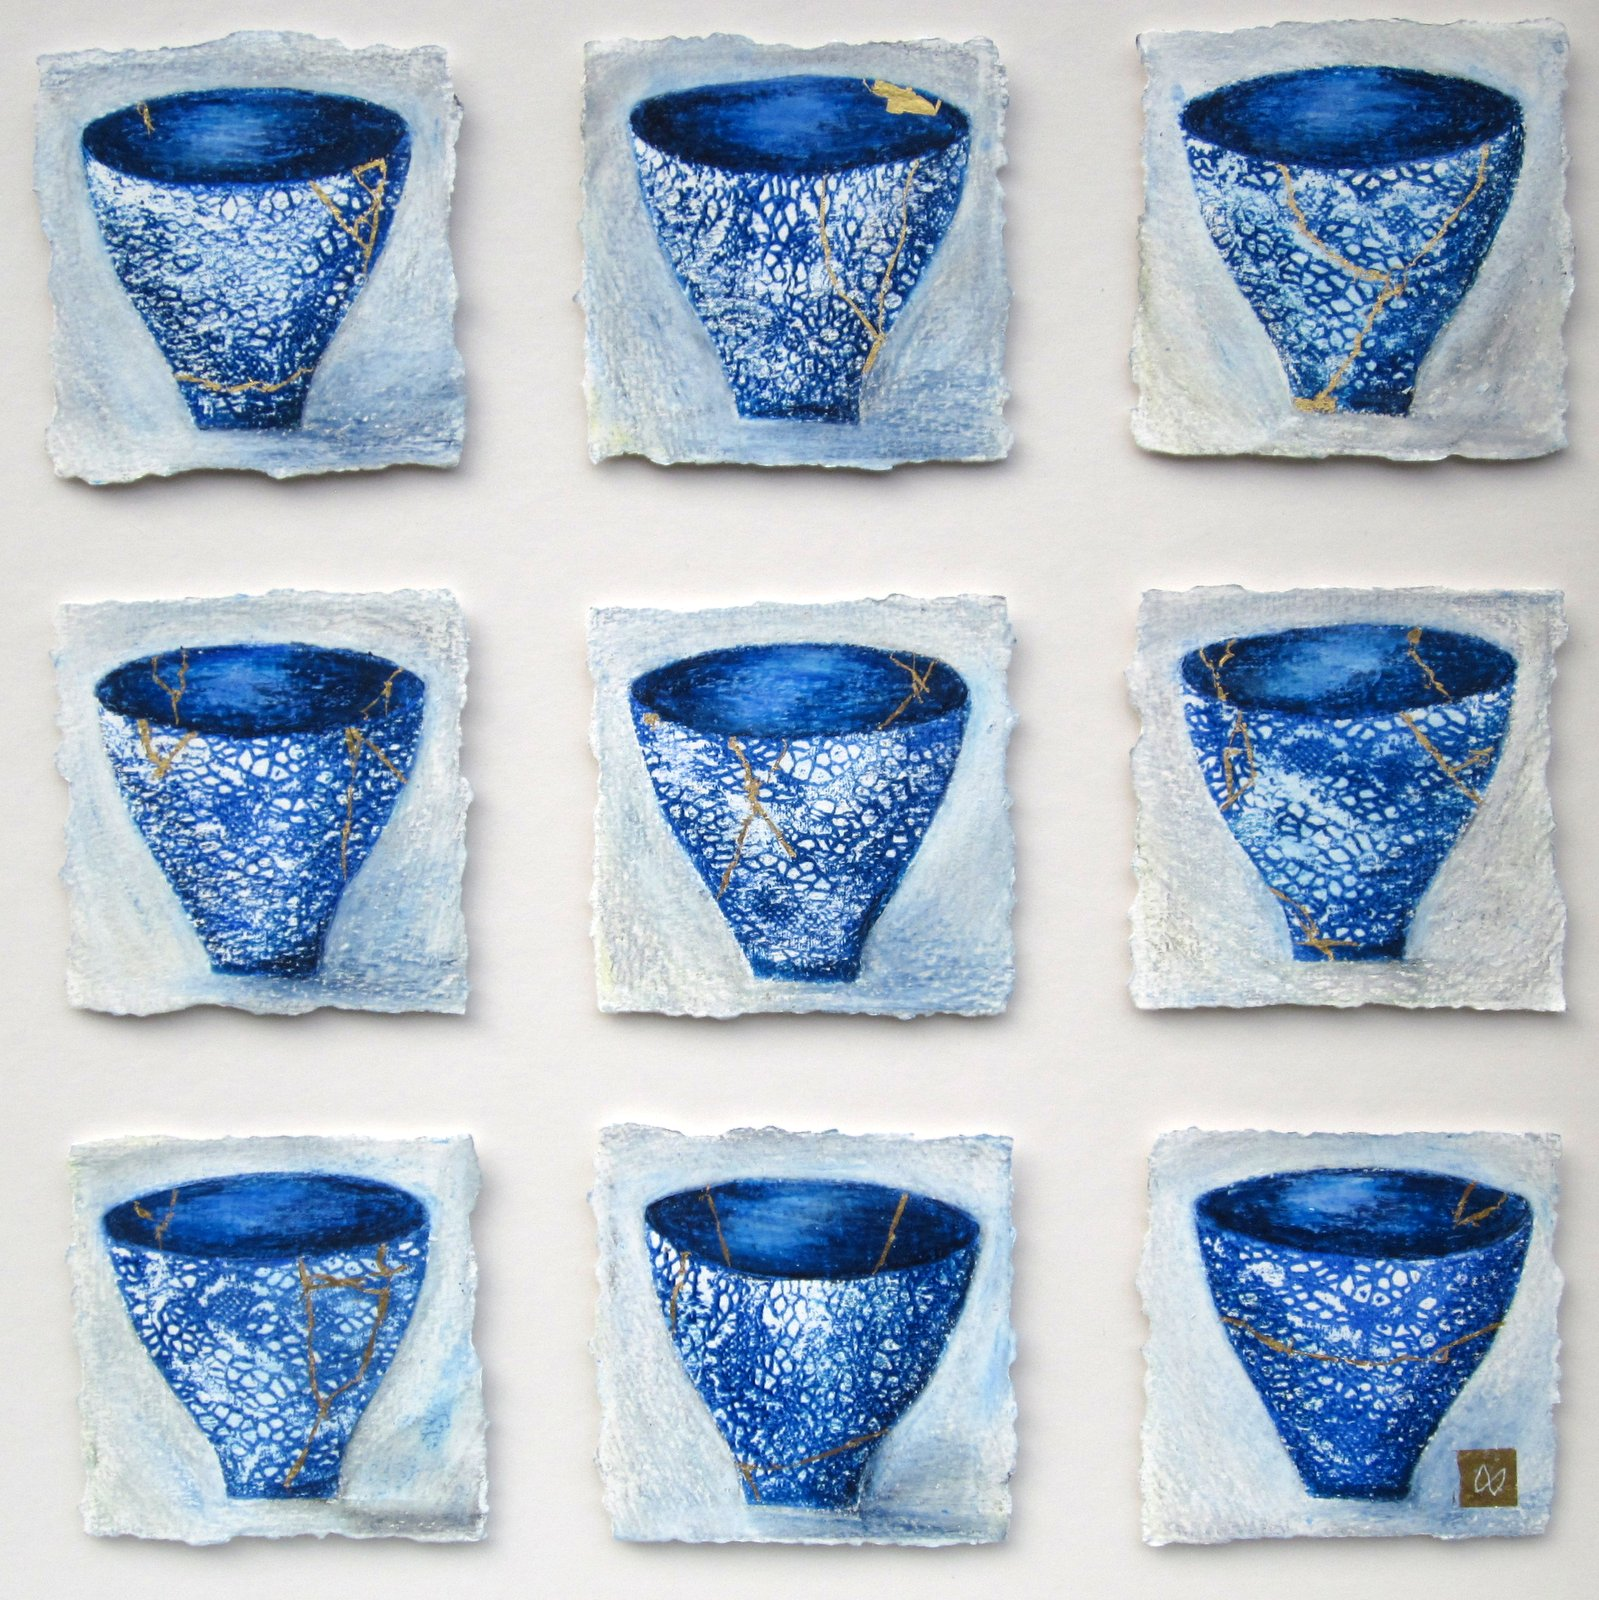 Nine blue lace kintsugi tea bowls with gold repair